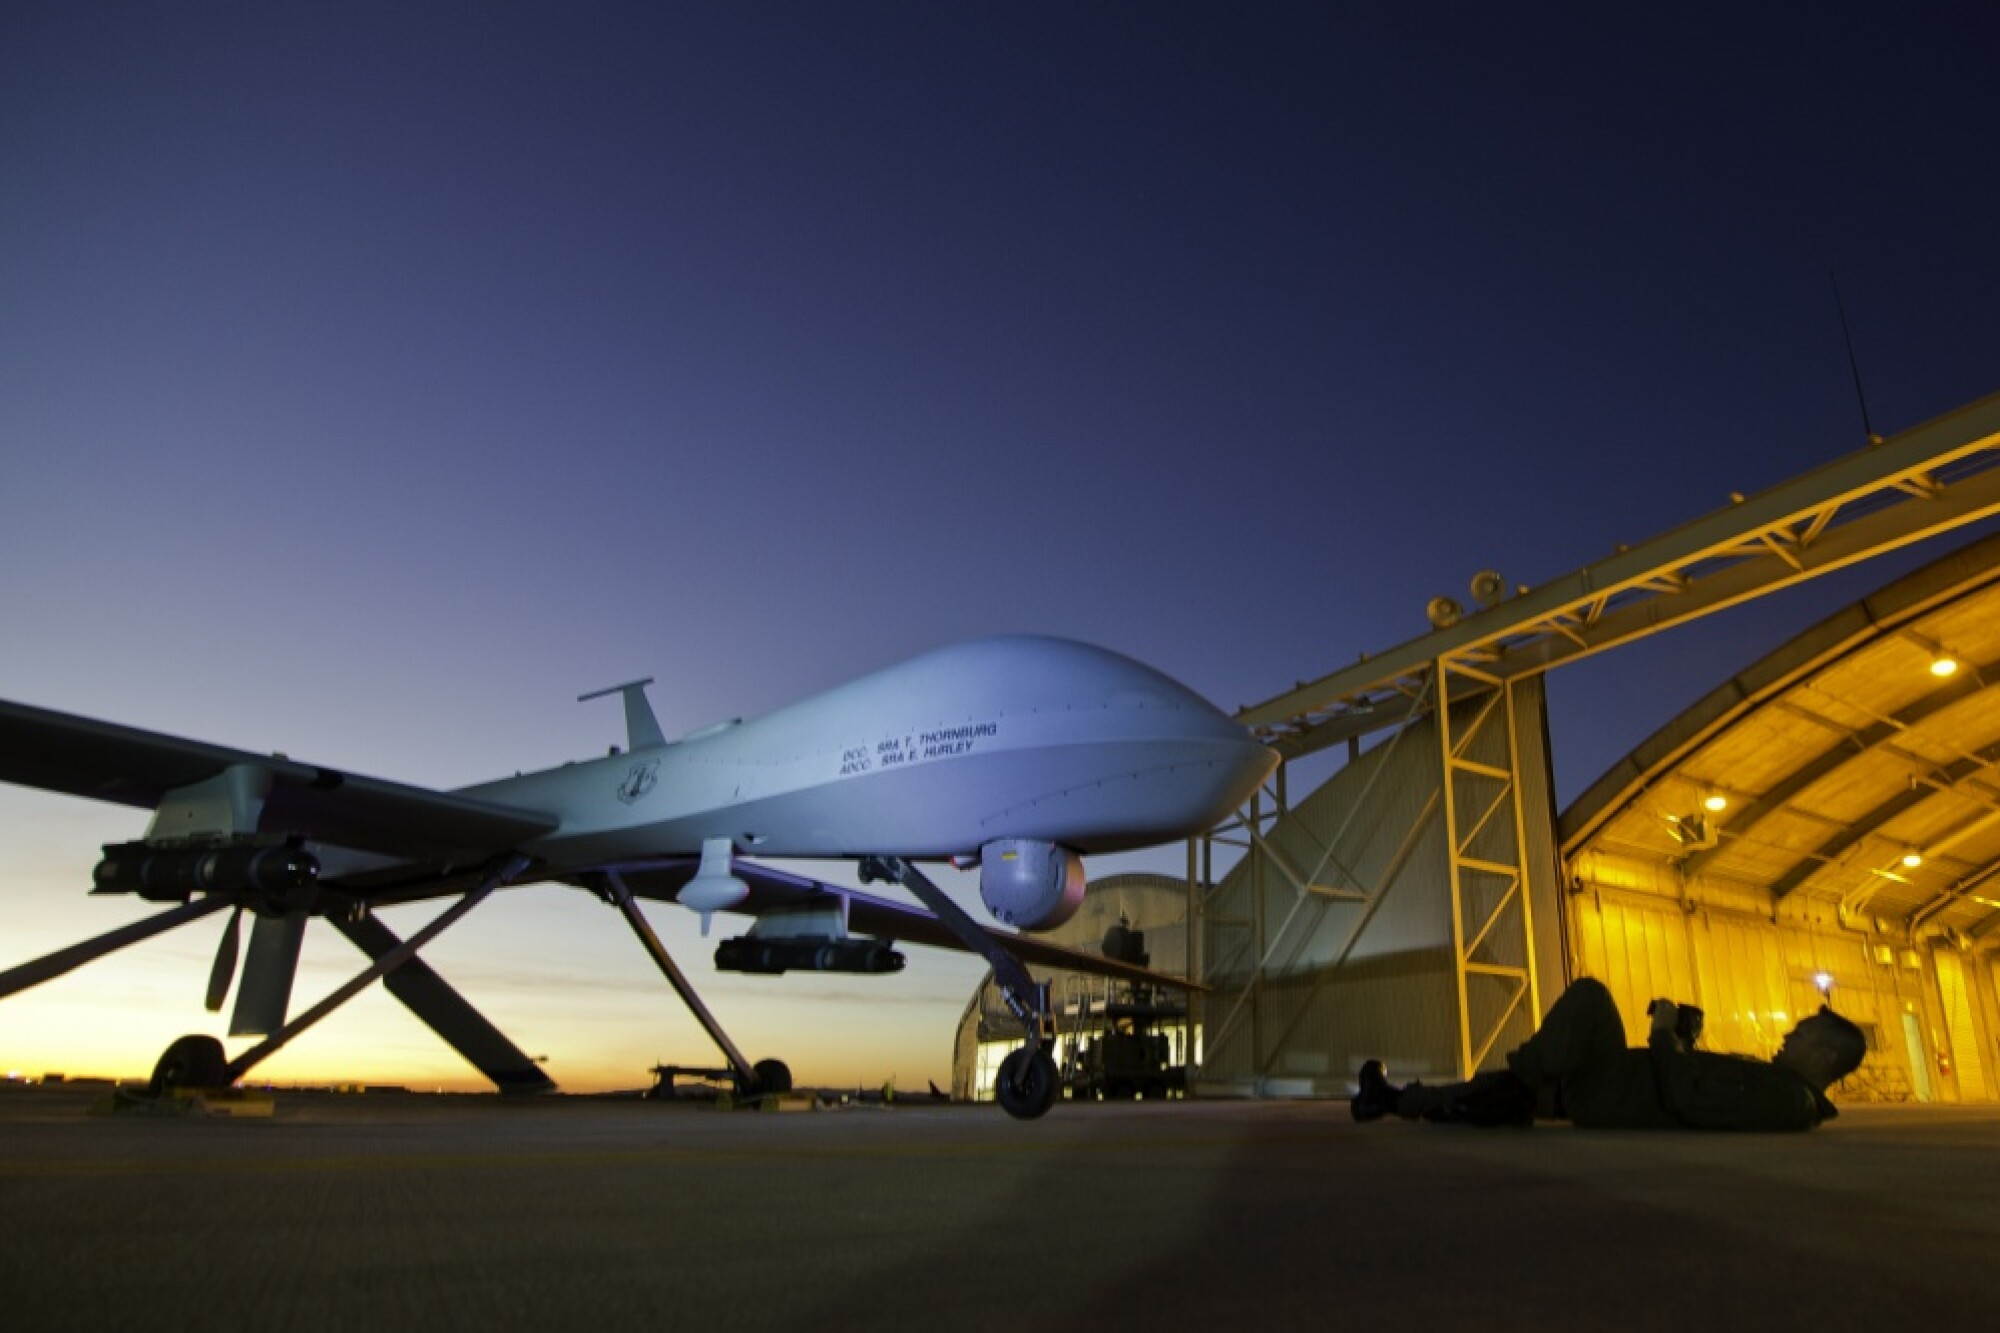 MQ-1 Predator is shown during post-flight inspection at dusk in Victorville, Calif.